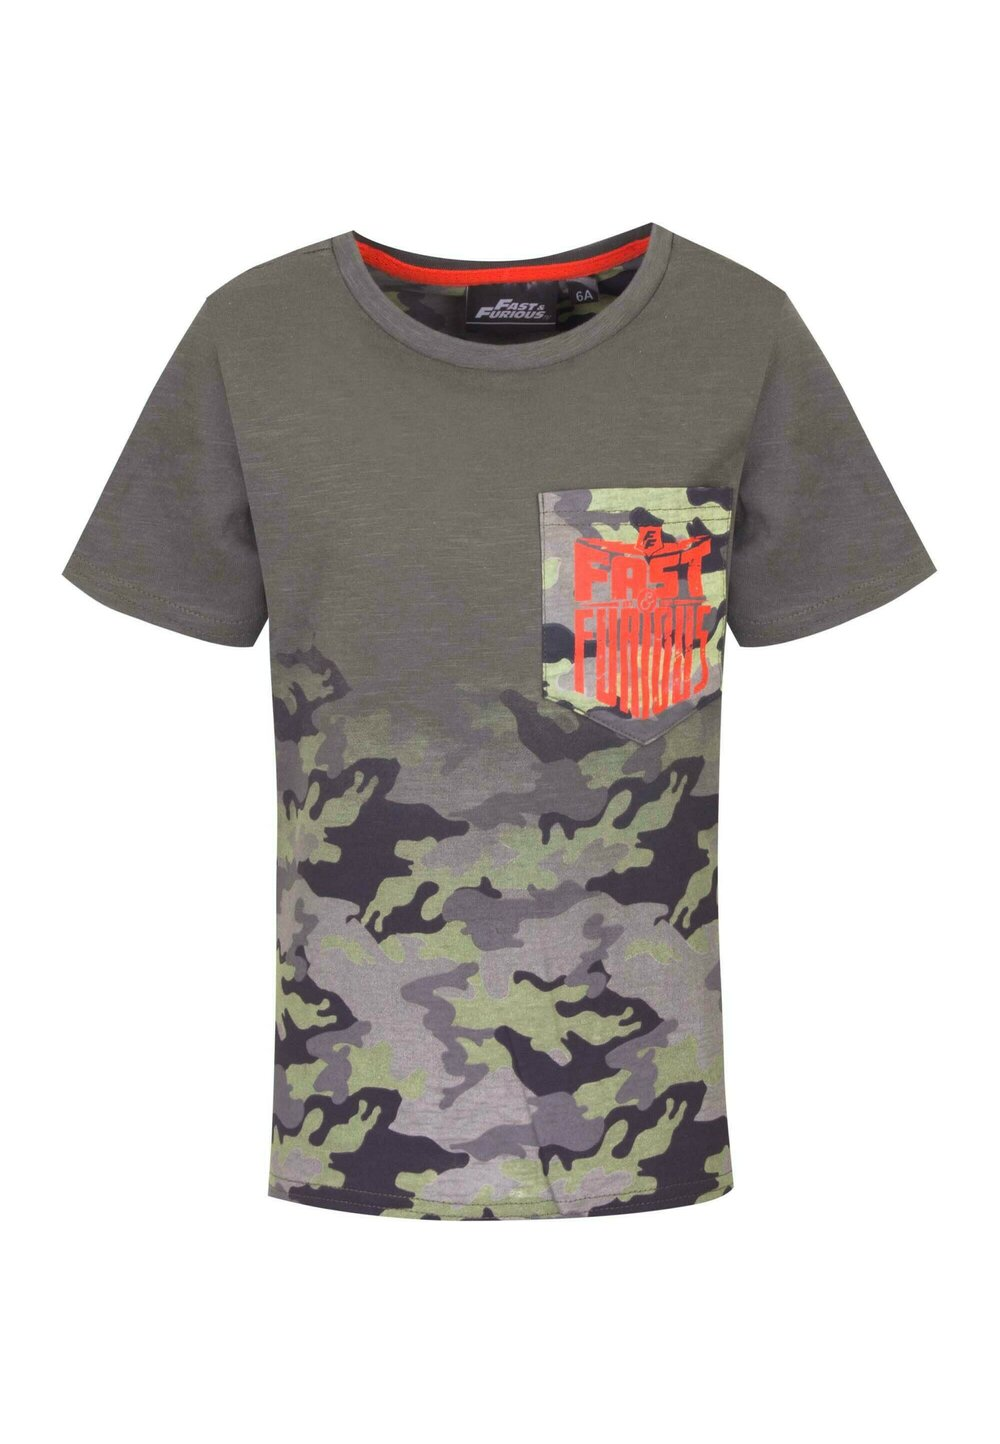 Tricou, Fast and Furious army, verde imagine